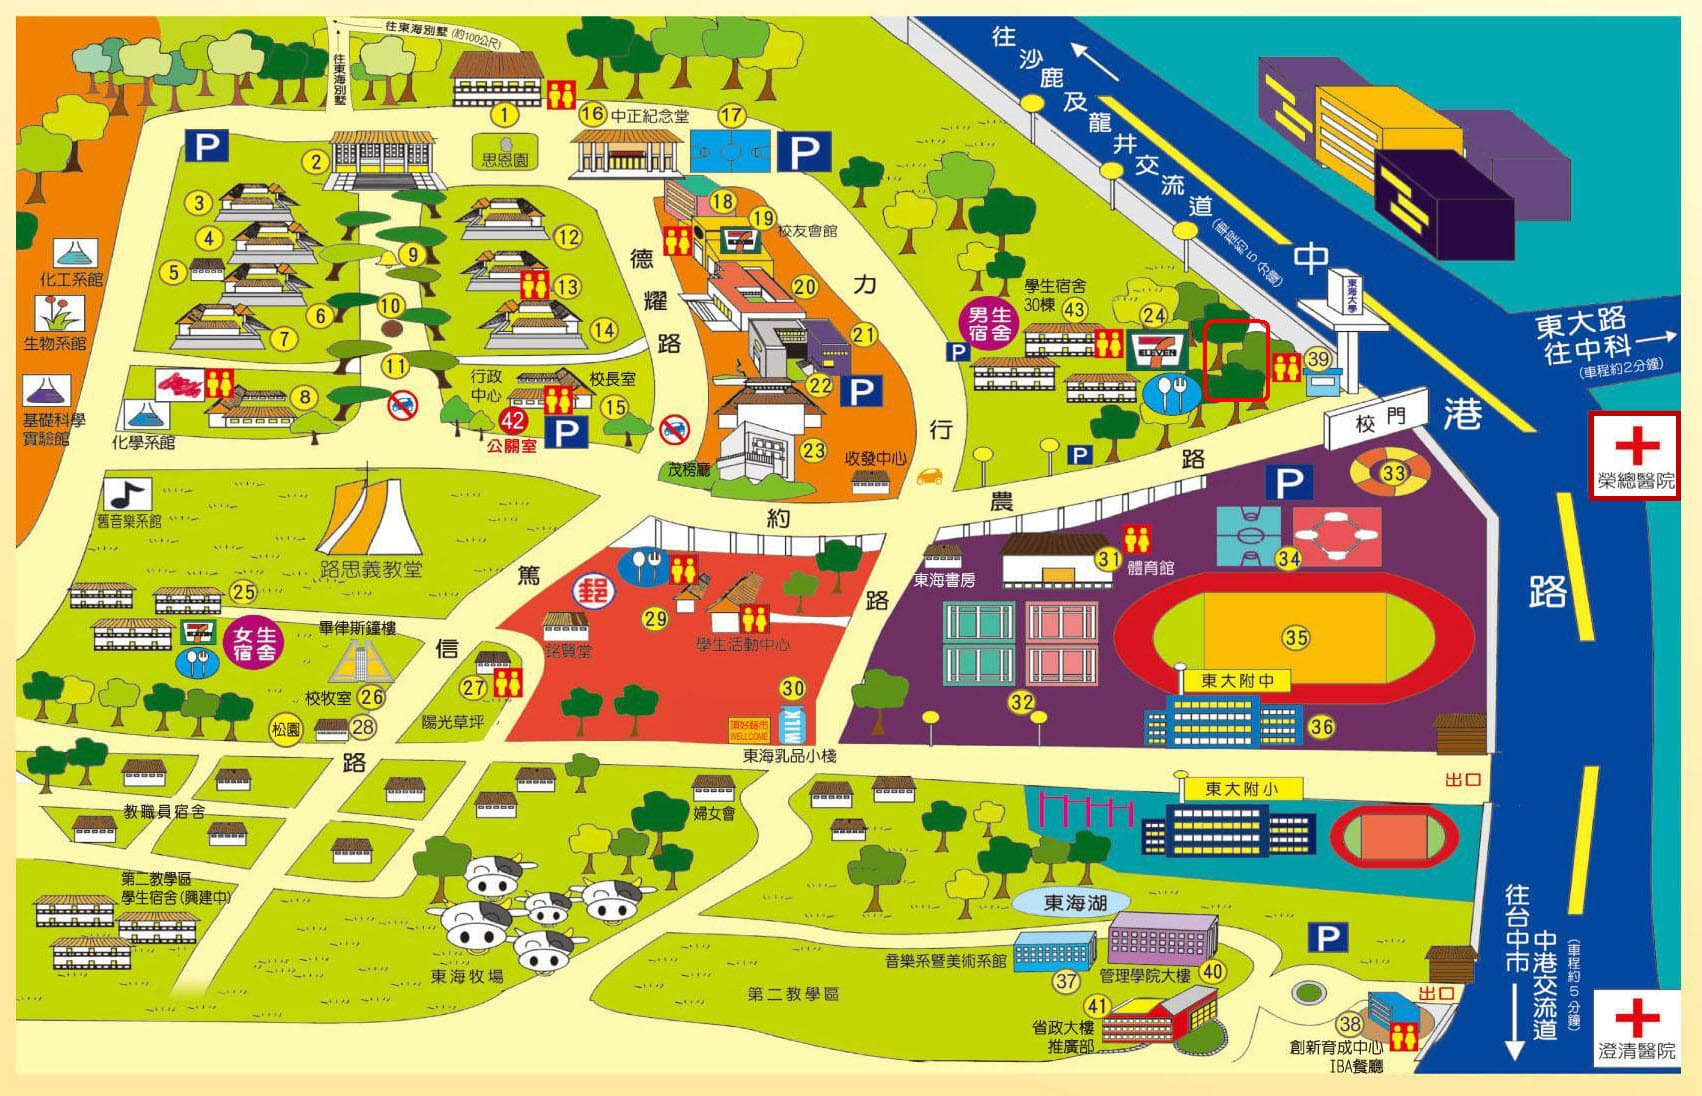 taichung-tung-hai-university-map-2